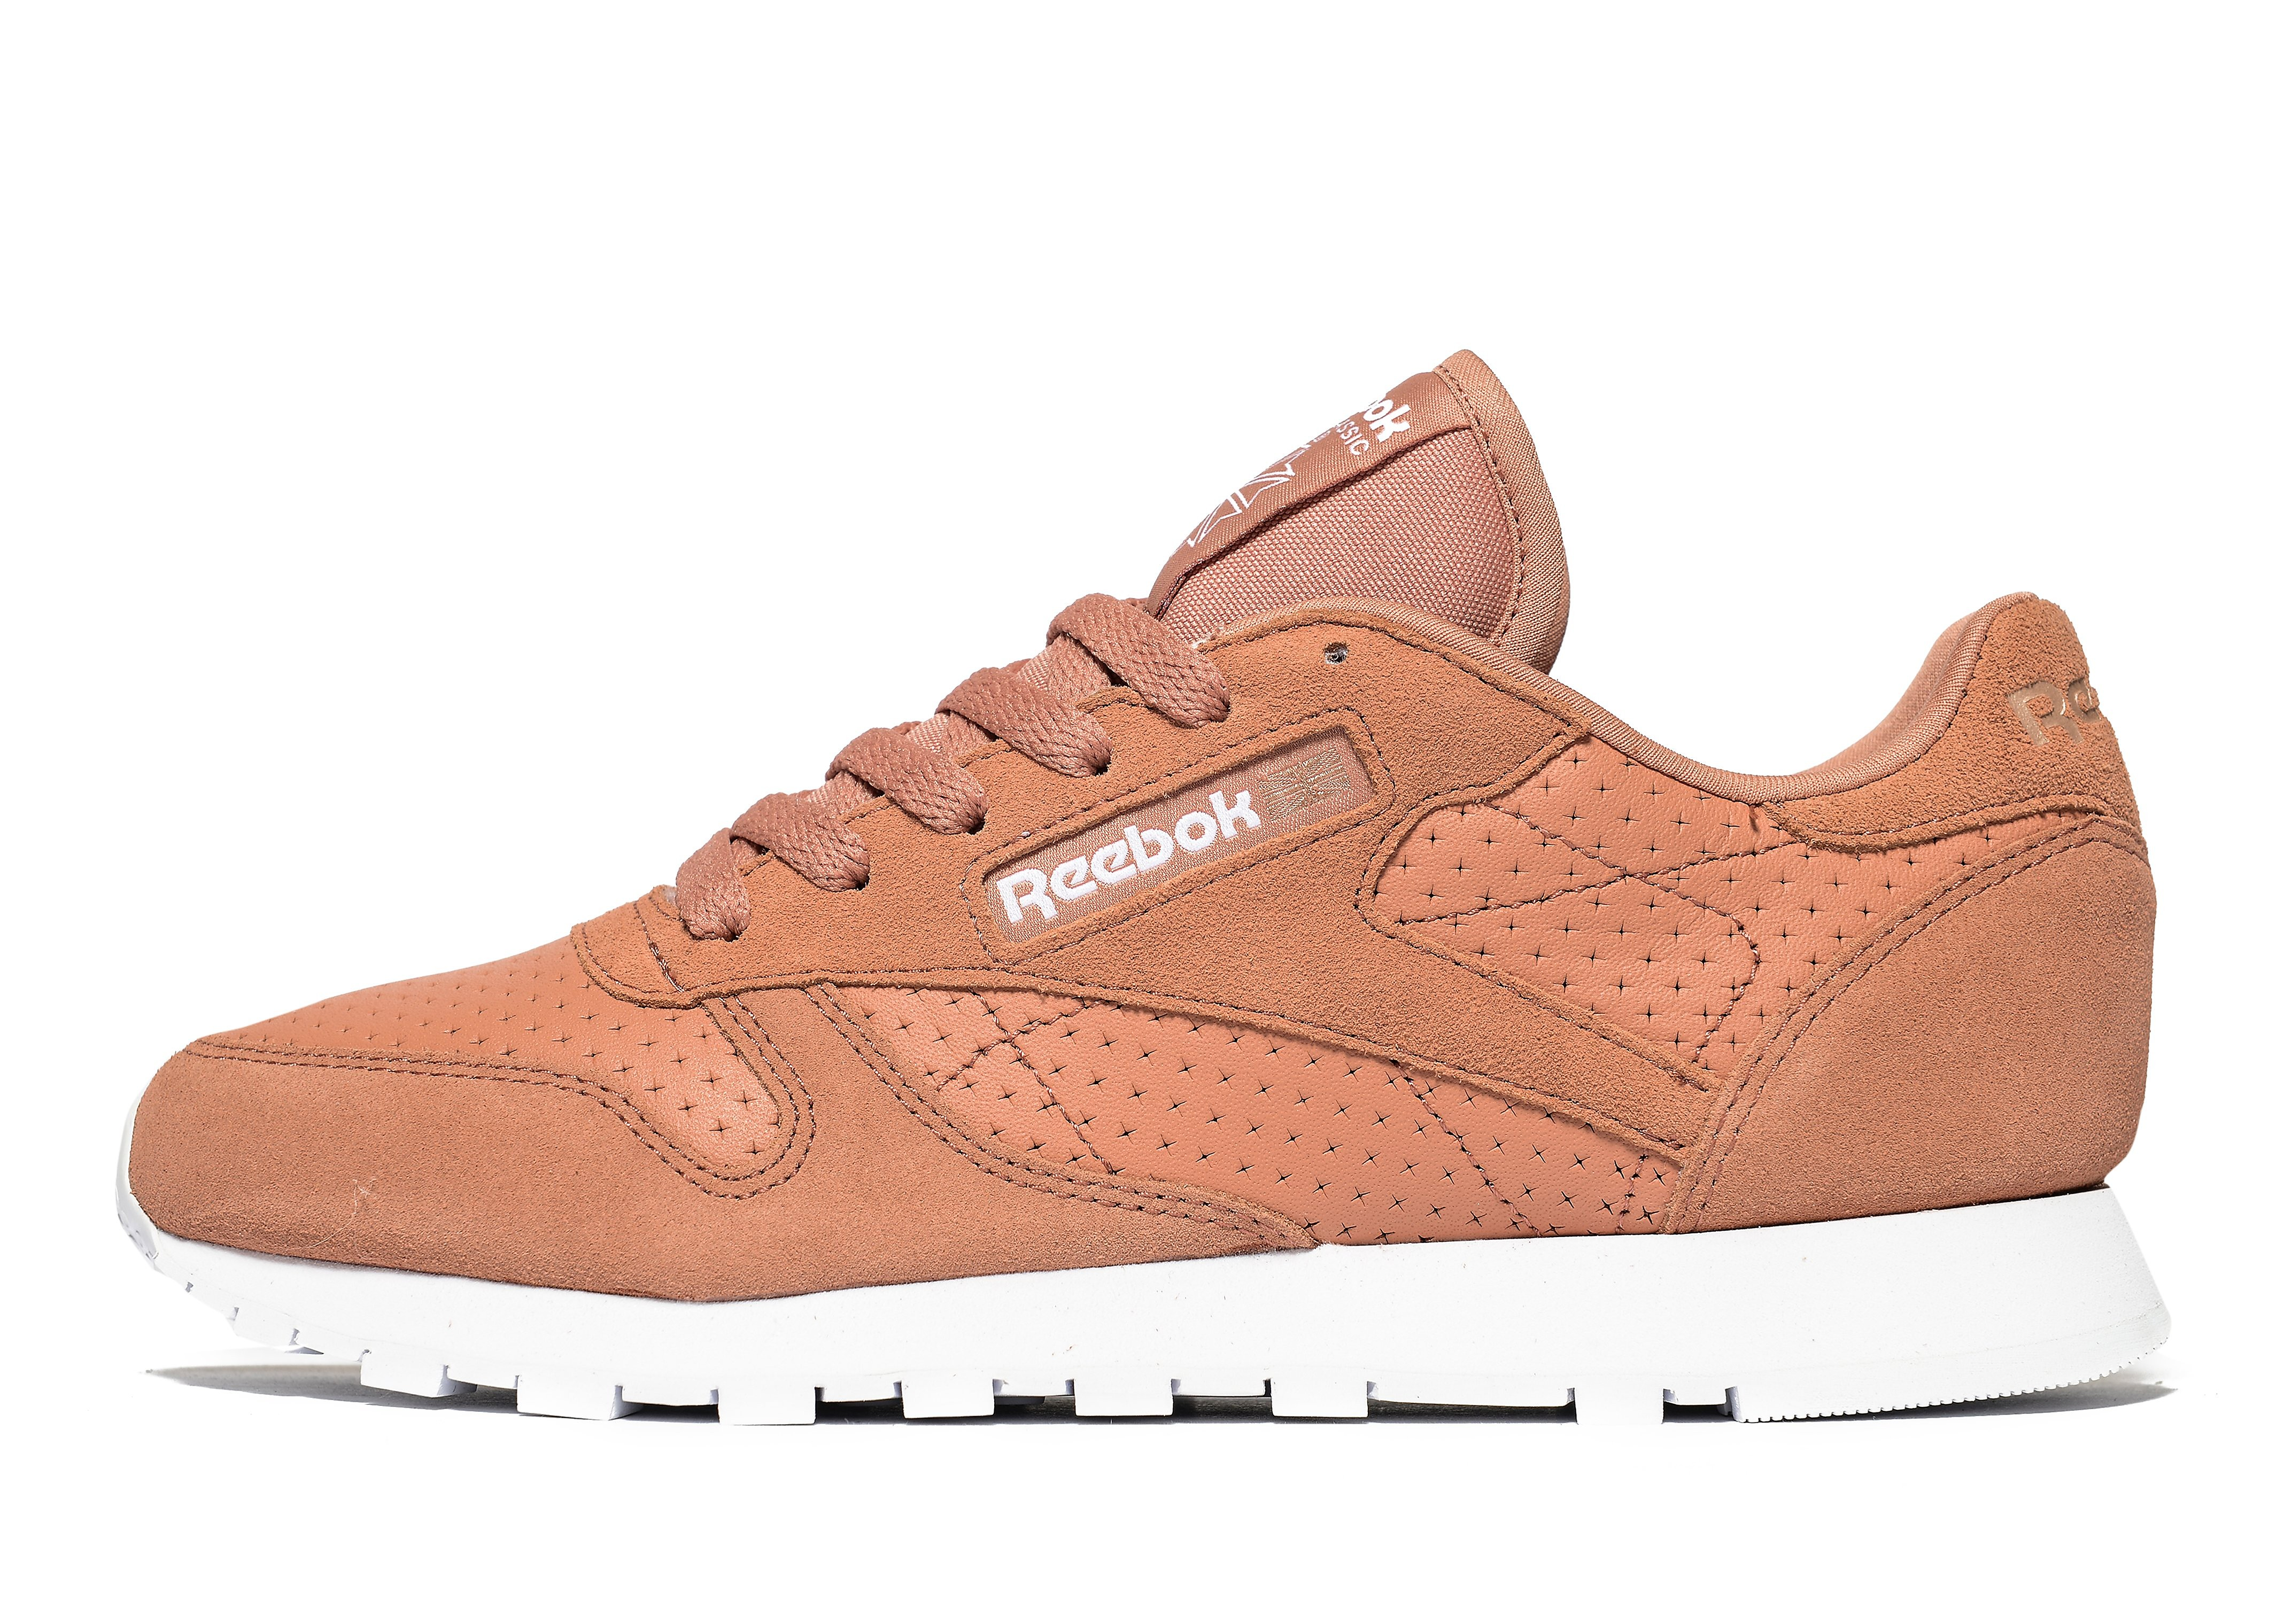 Reebok Classic Leather Perforated